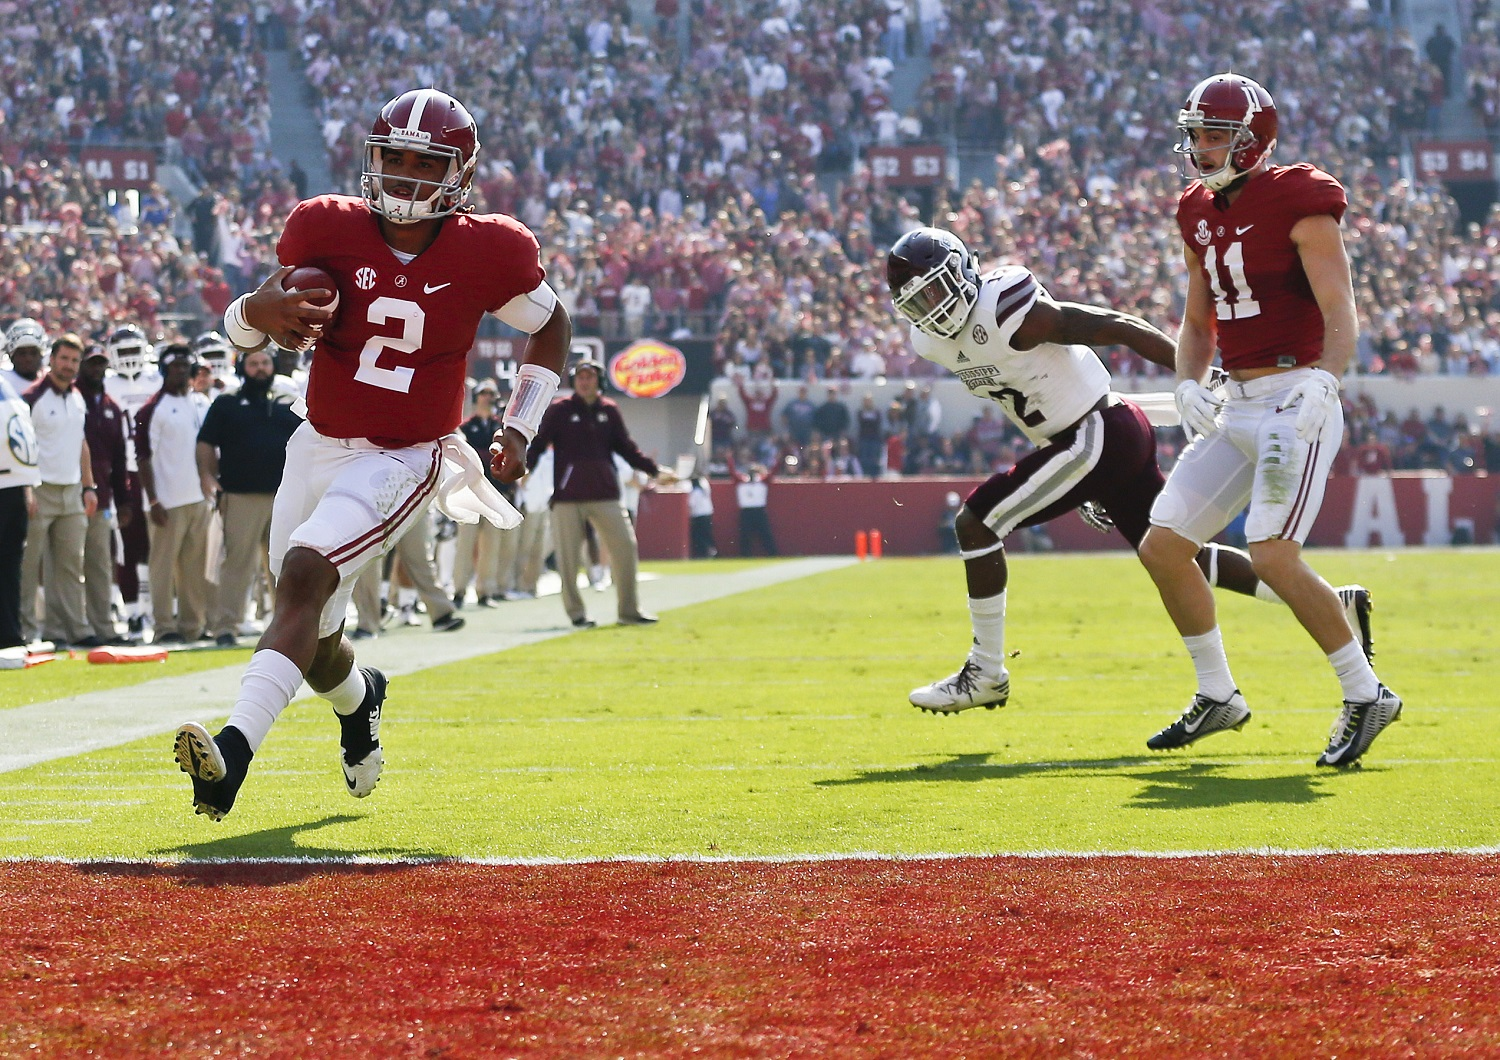 Alabama quarterback Jalen Hurts, left, scores a touchdown during the first half of an NCAA college football game against Mississippi State, Saturday, Nov. 12, 2016, in Tuscaloosa, Ala. (AP Photo/Brynn Anderson)